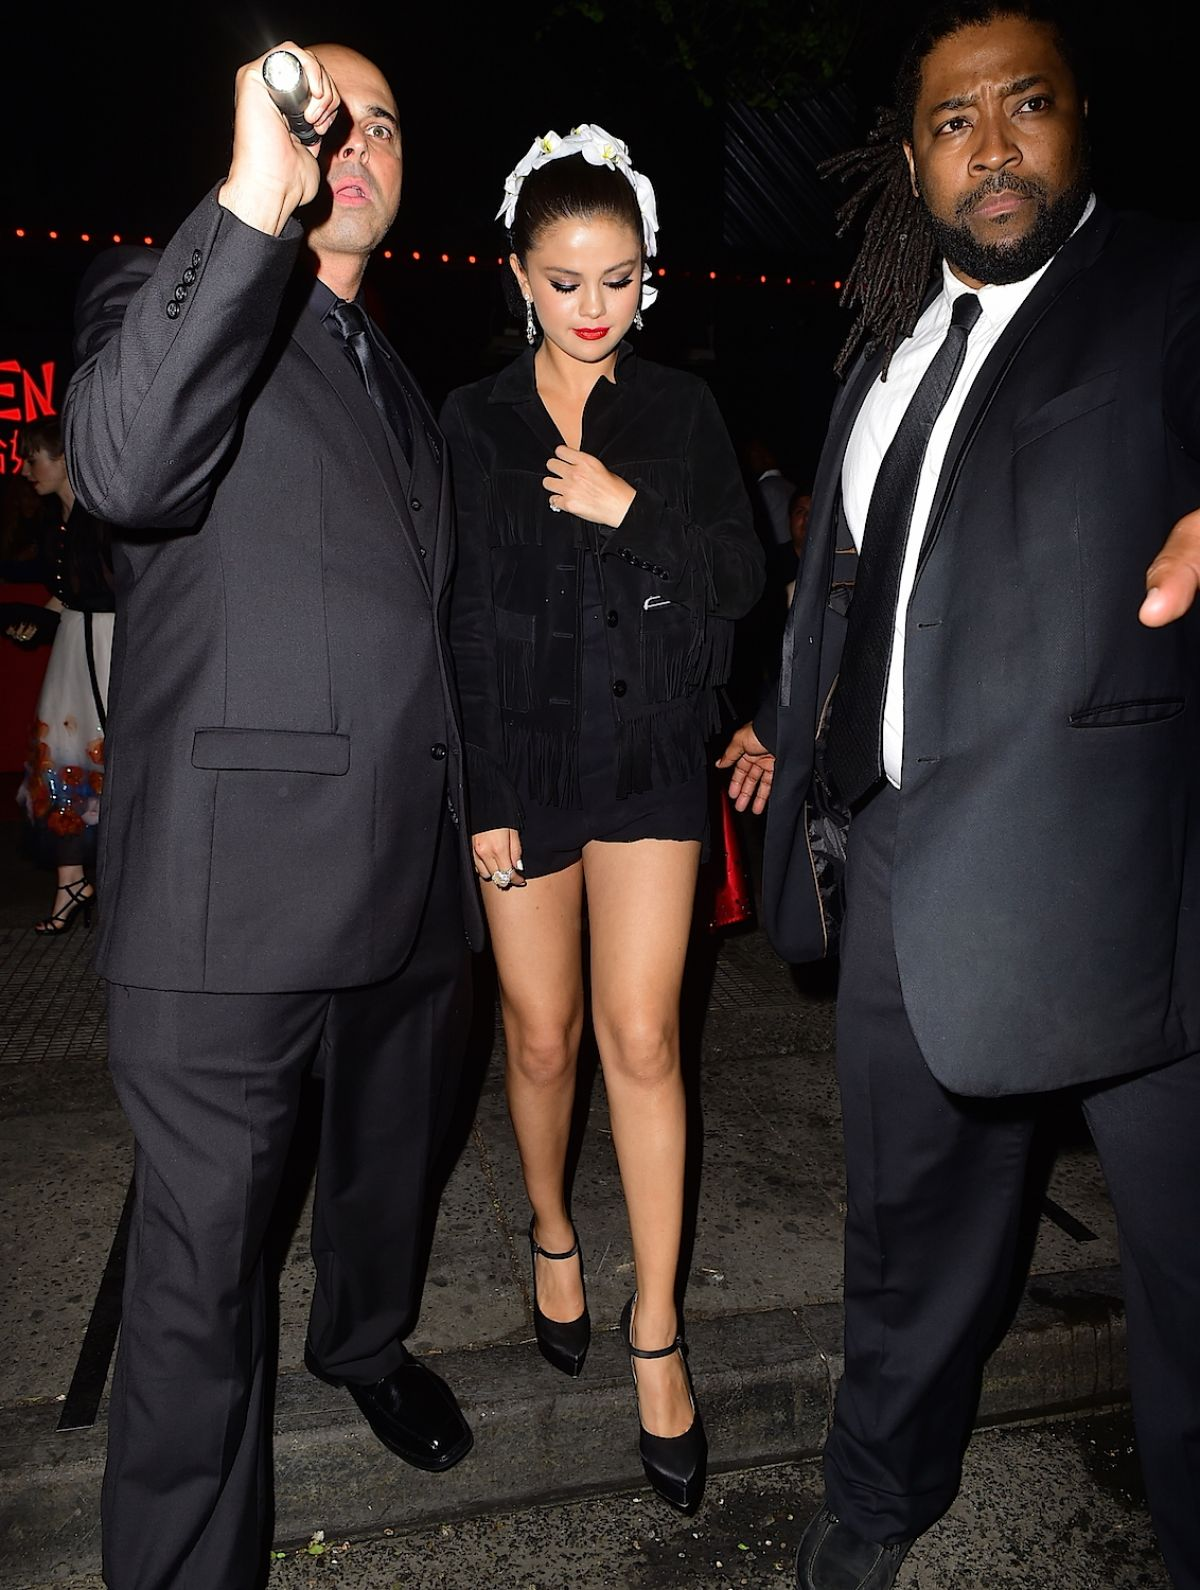 SELENA GOMEZ at MET Gala After Party in New York